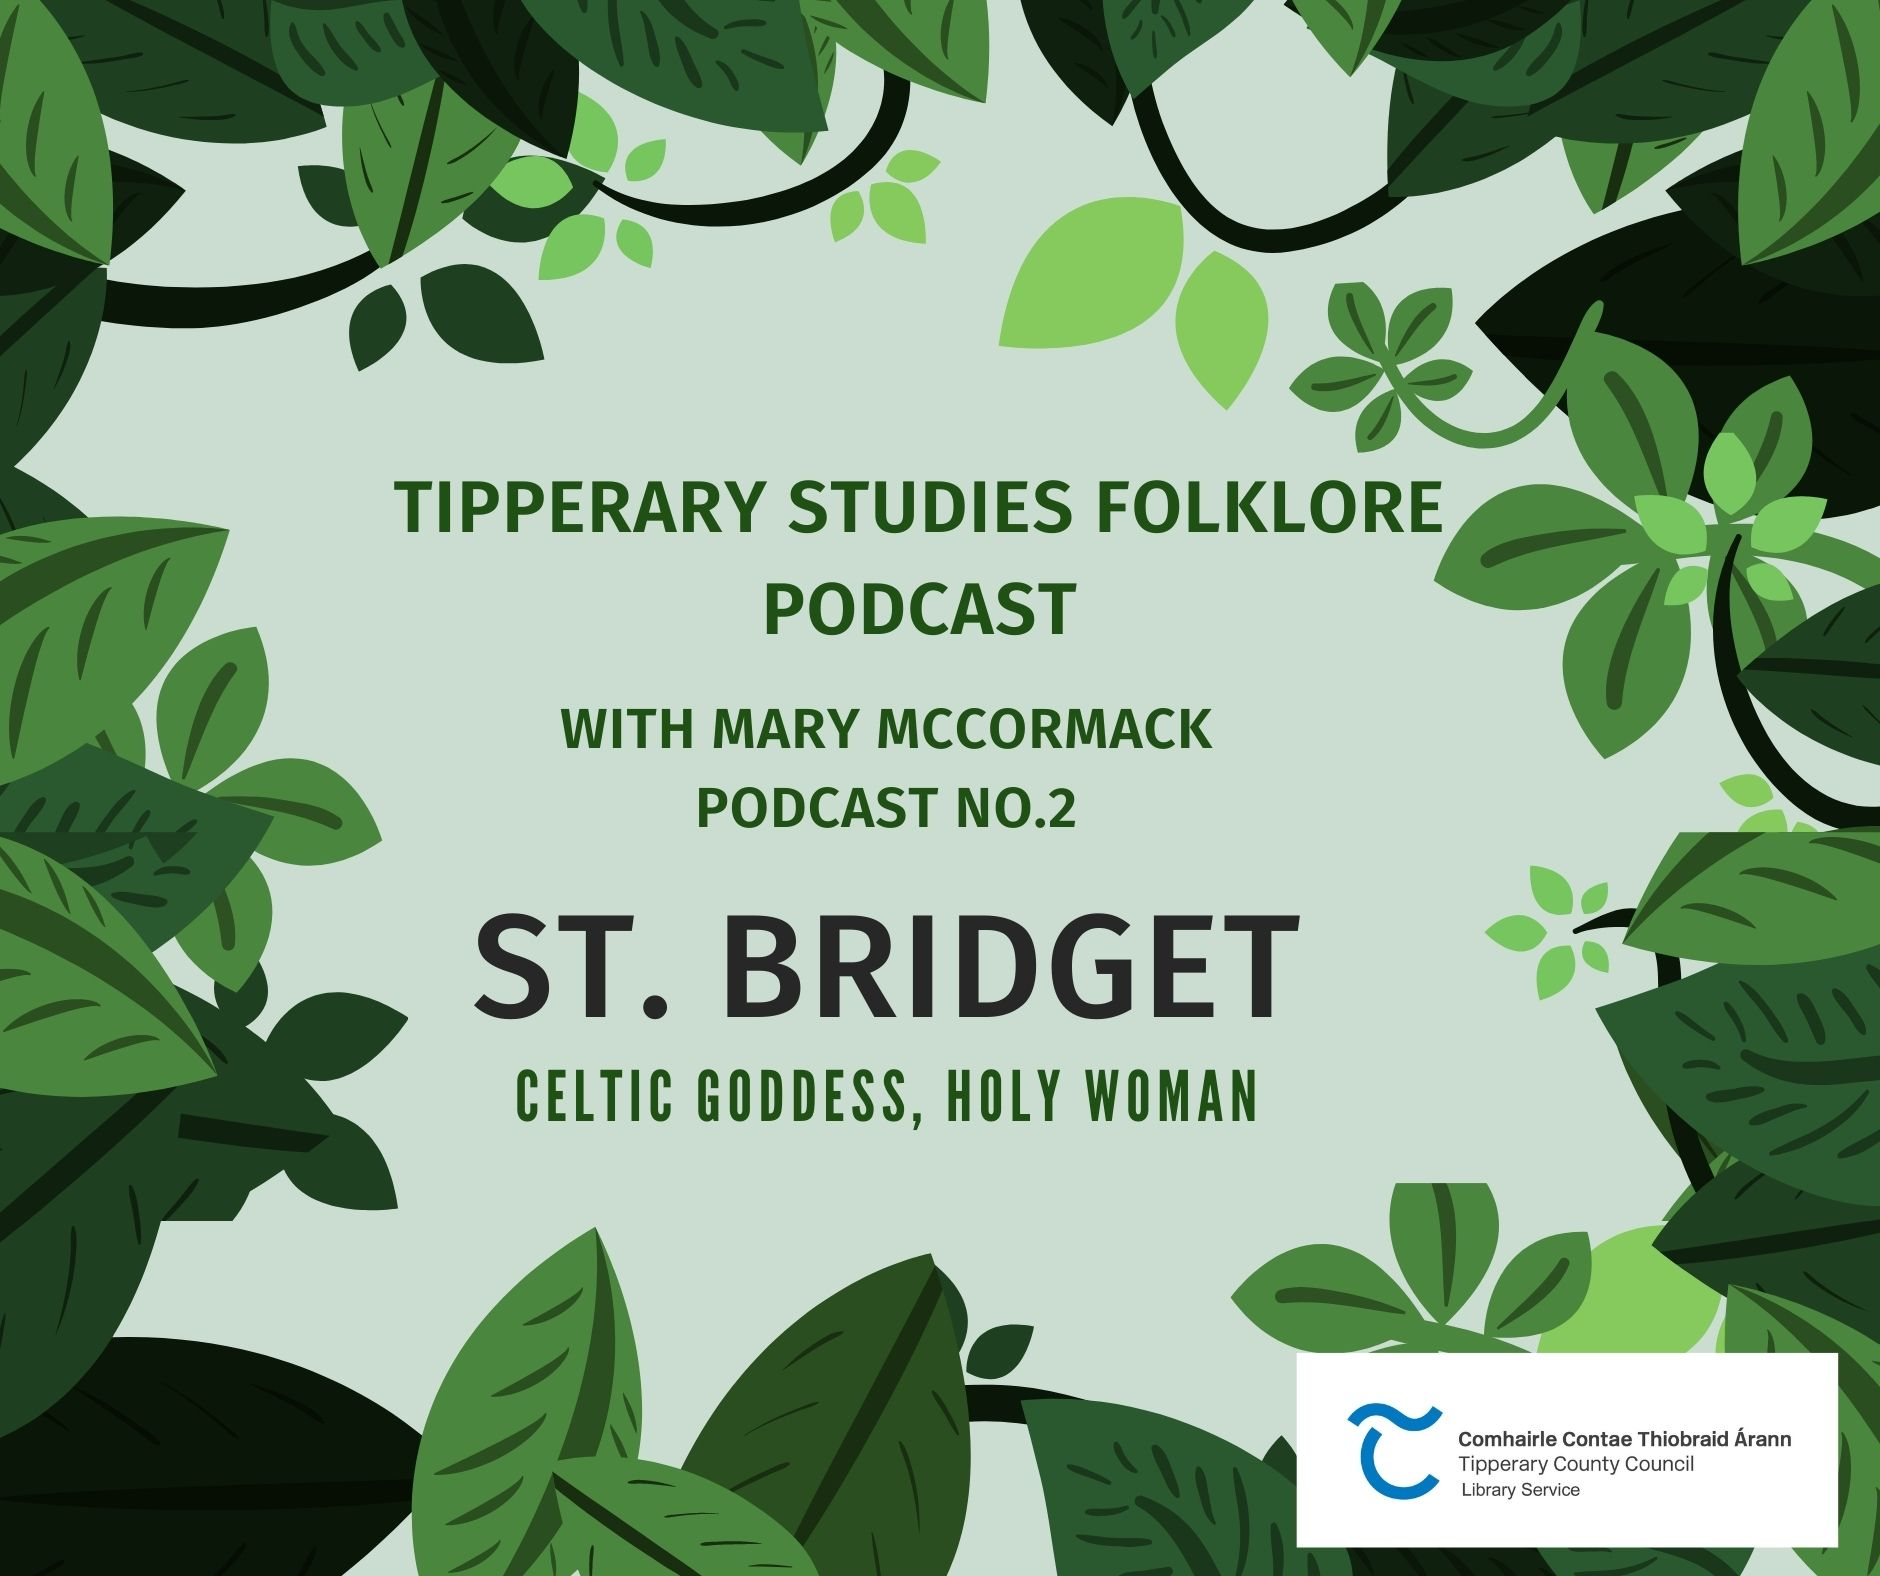 Folklore Podcast 3; Bridget Celtic Goddess Holy Woman